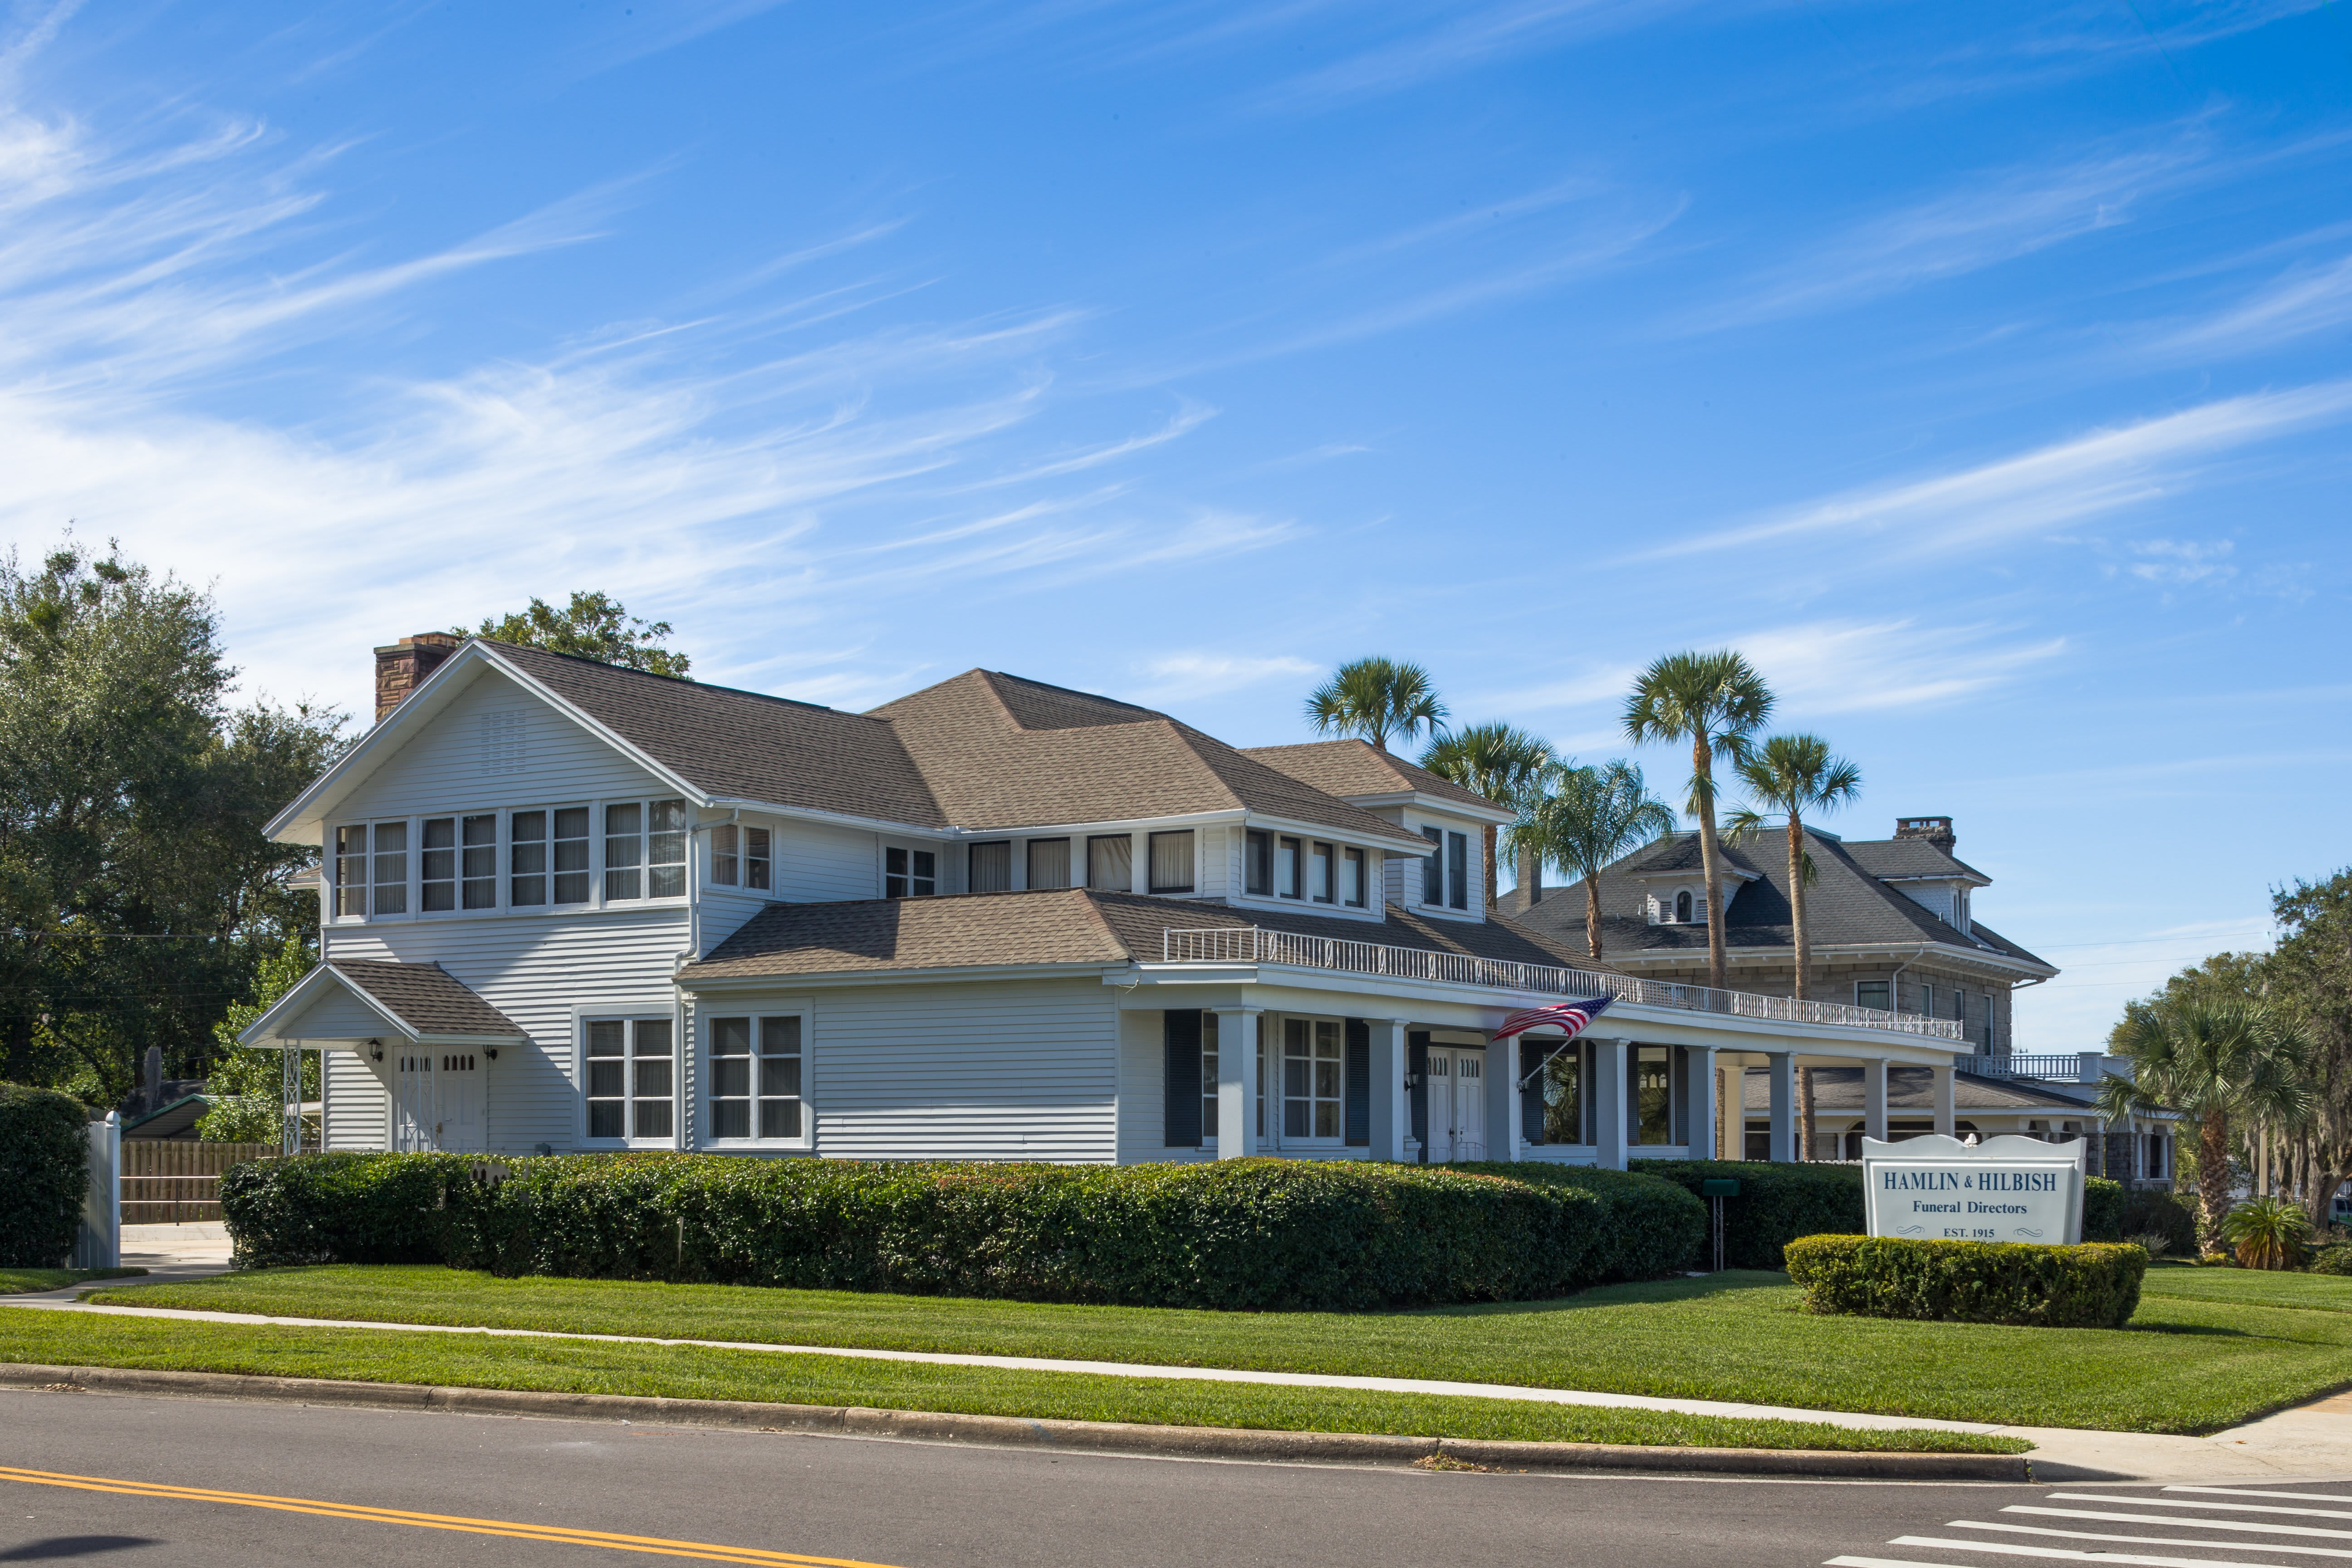 Page-Theus Funeral Home and Cremation Services - Leesburg, FL